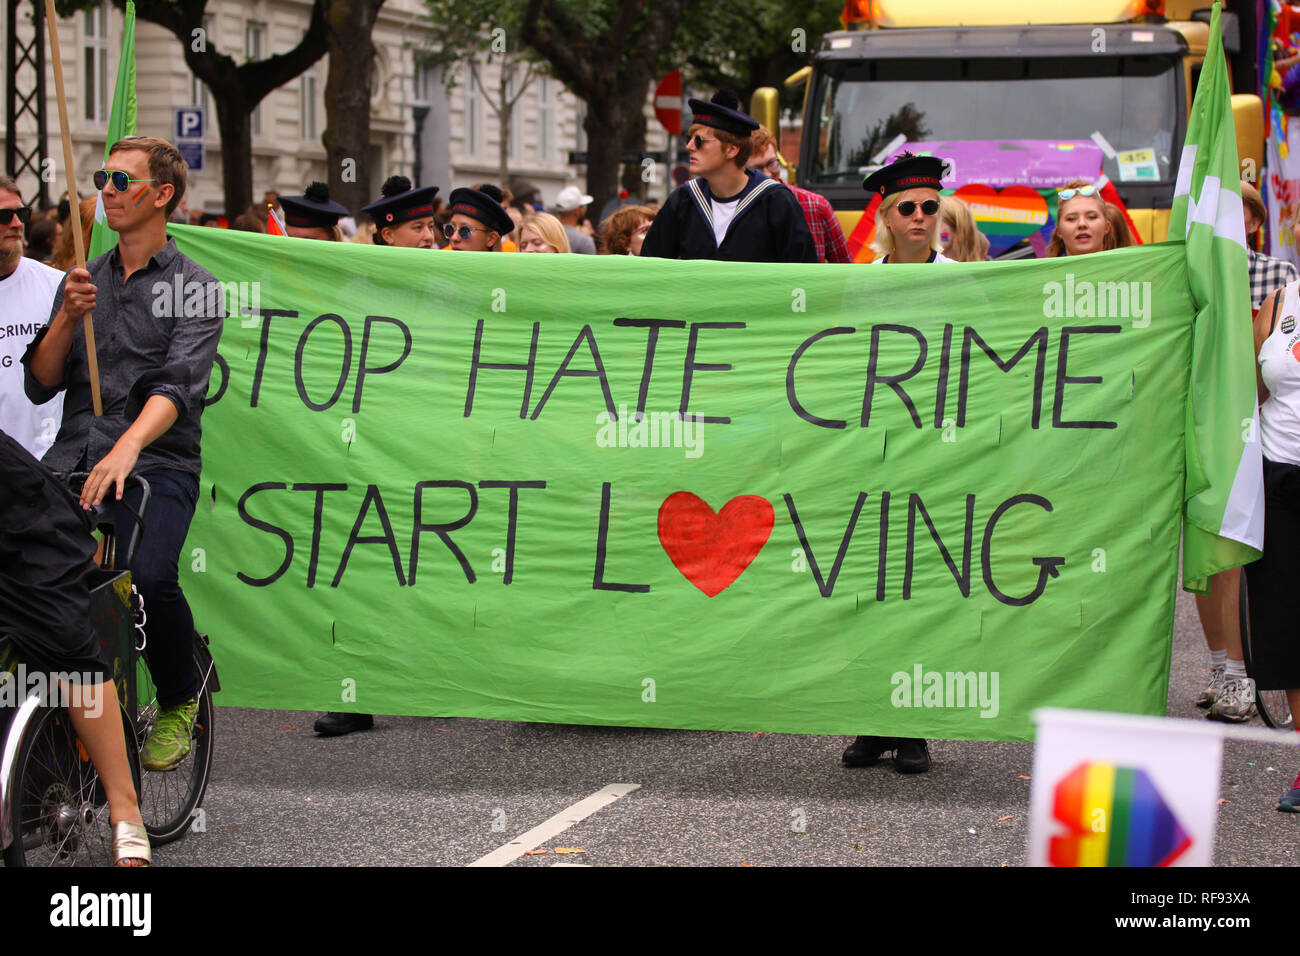 Copenhagen, Denmark - August 18. 2018: Stop hate crime demonstration - people carrying a banner - Stock Image